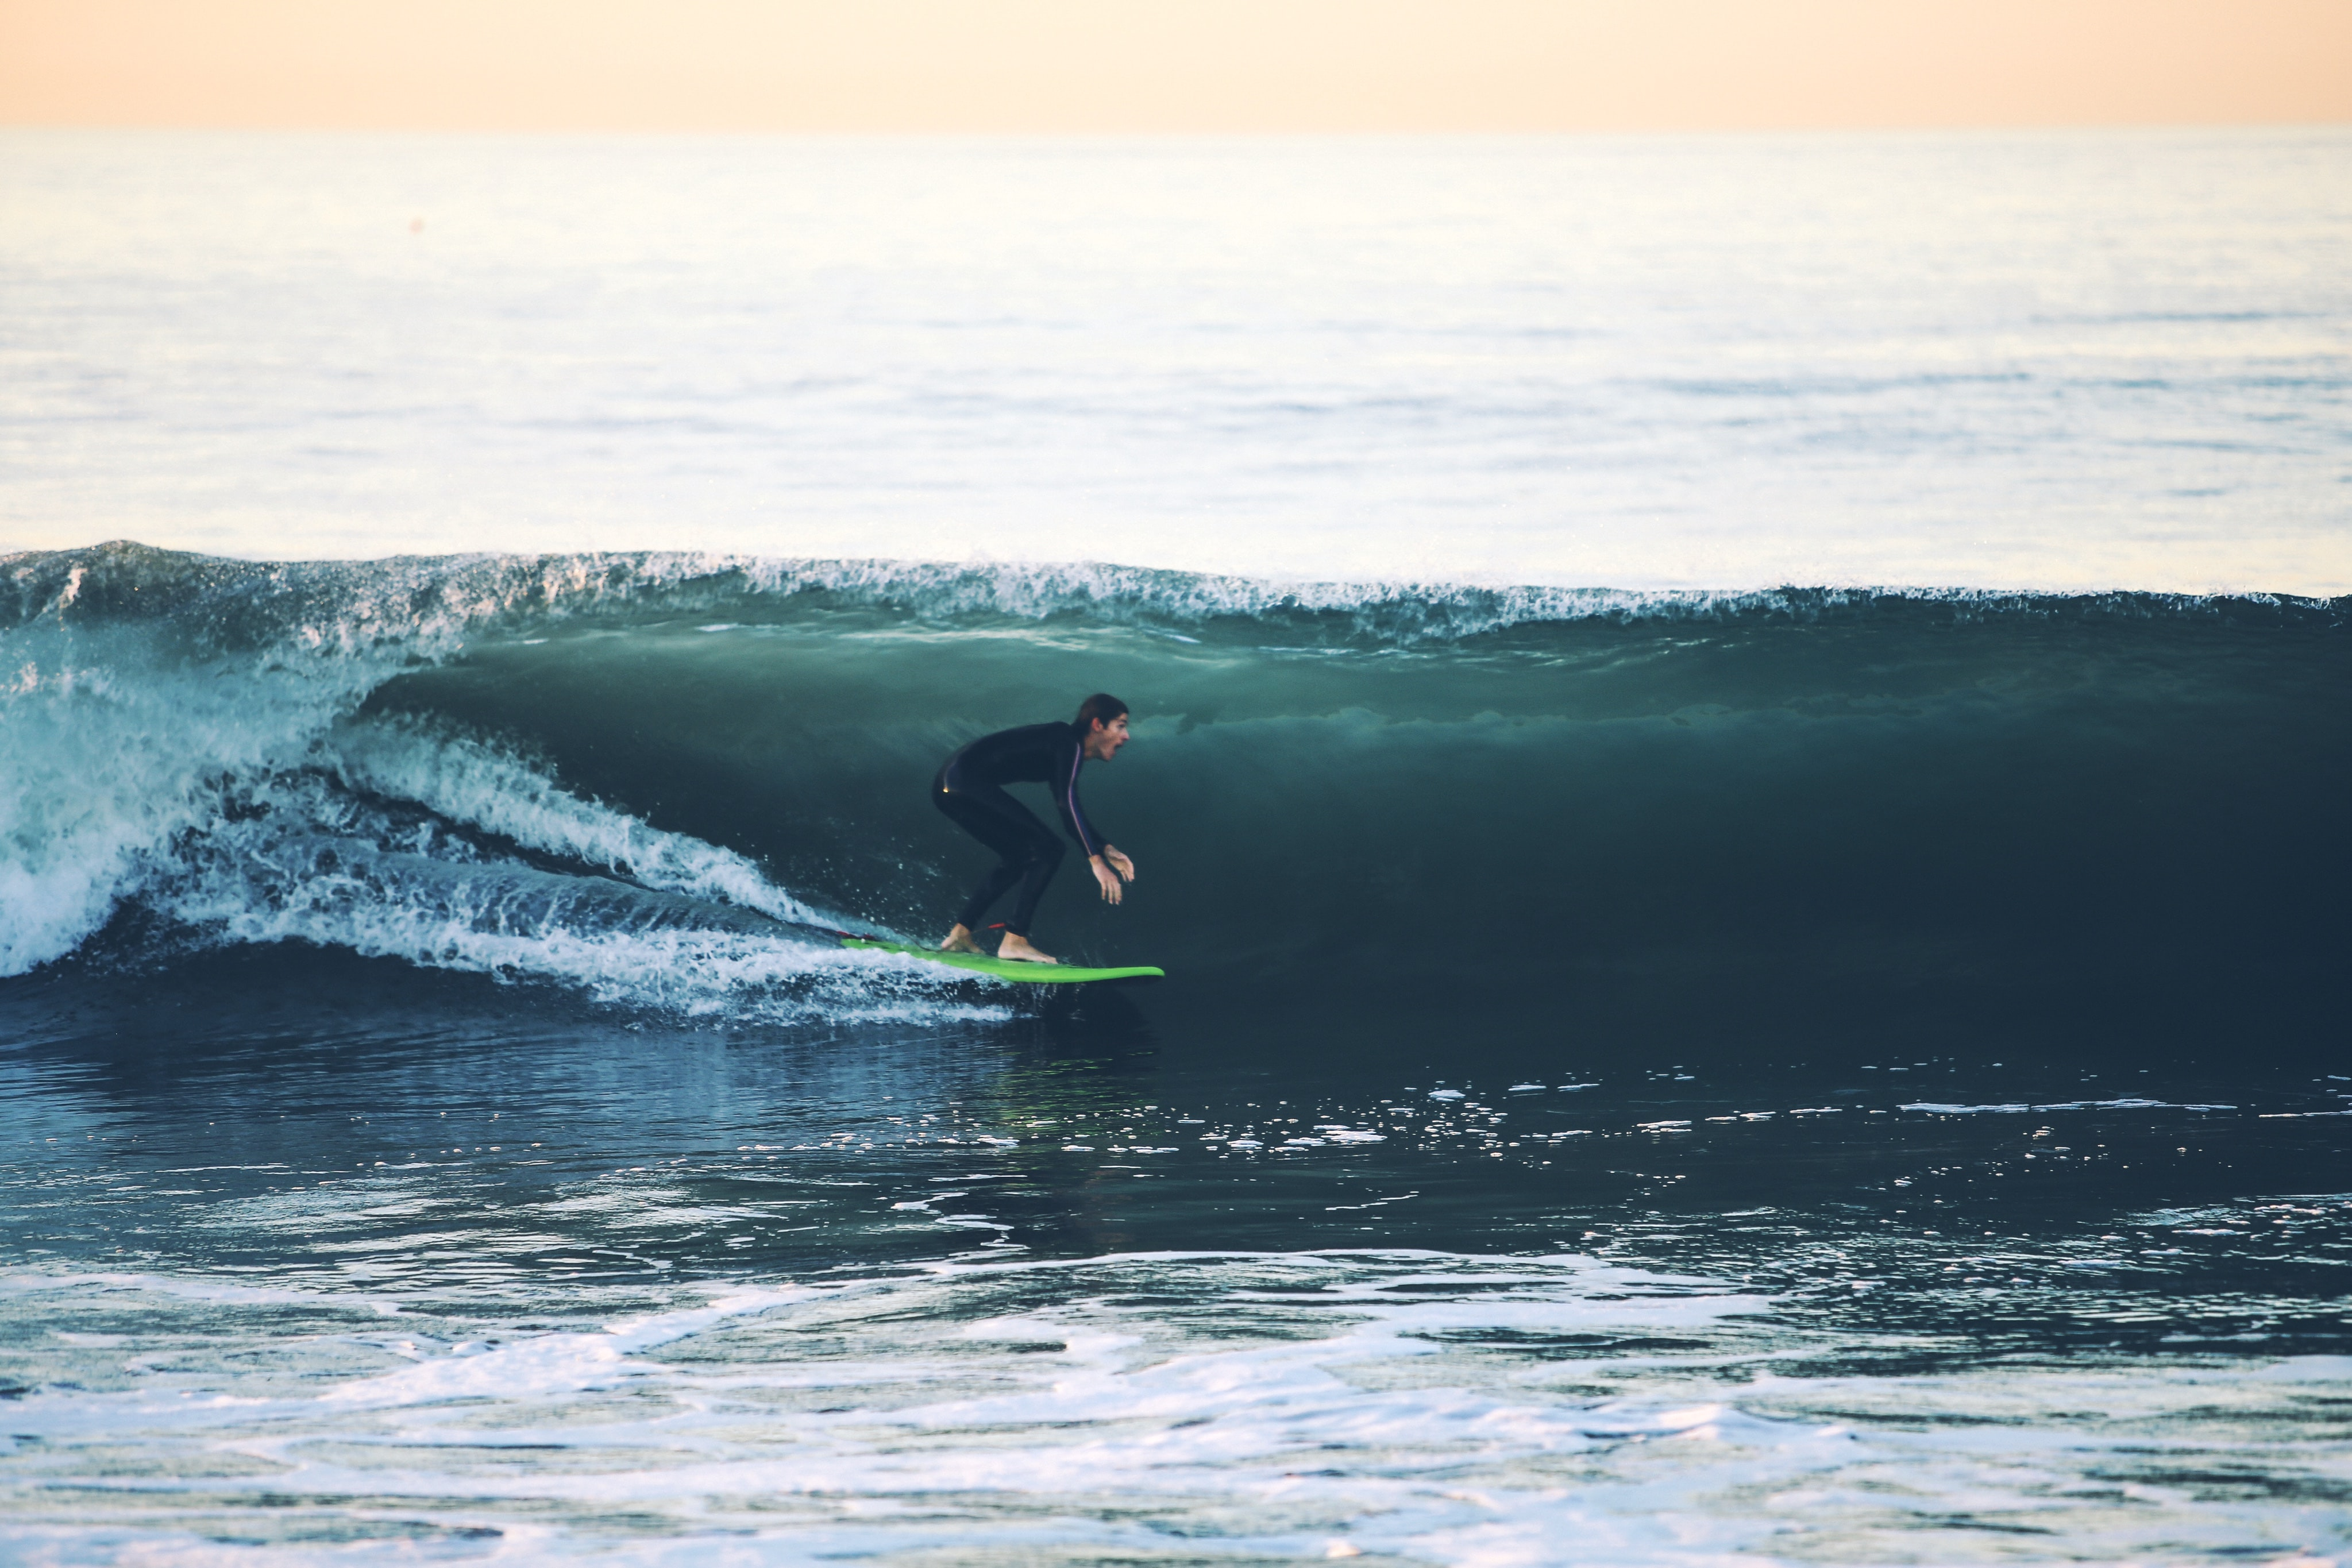 Surfer surfing on the ocean wave at 54th Street